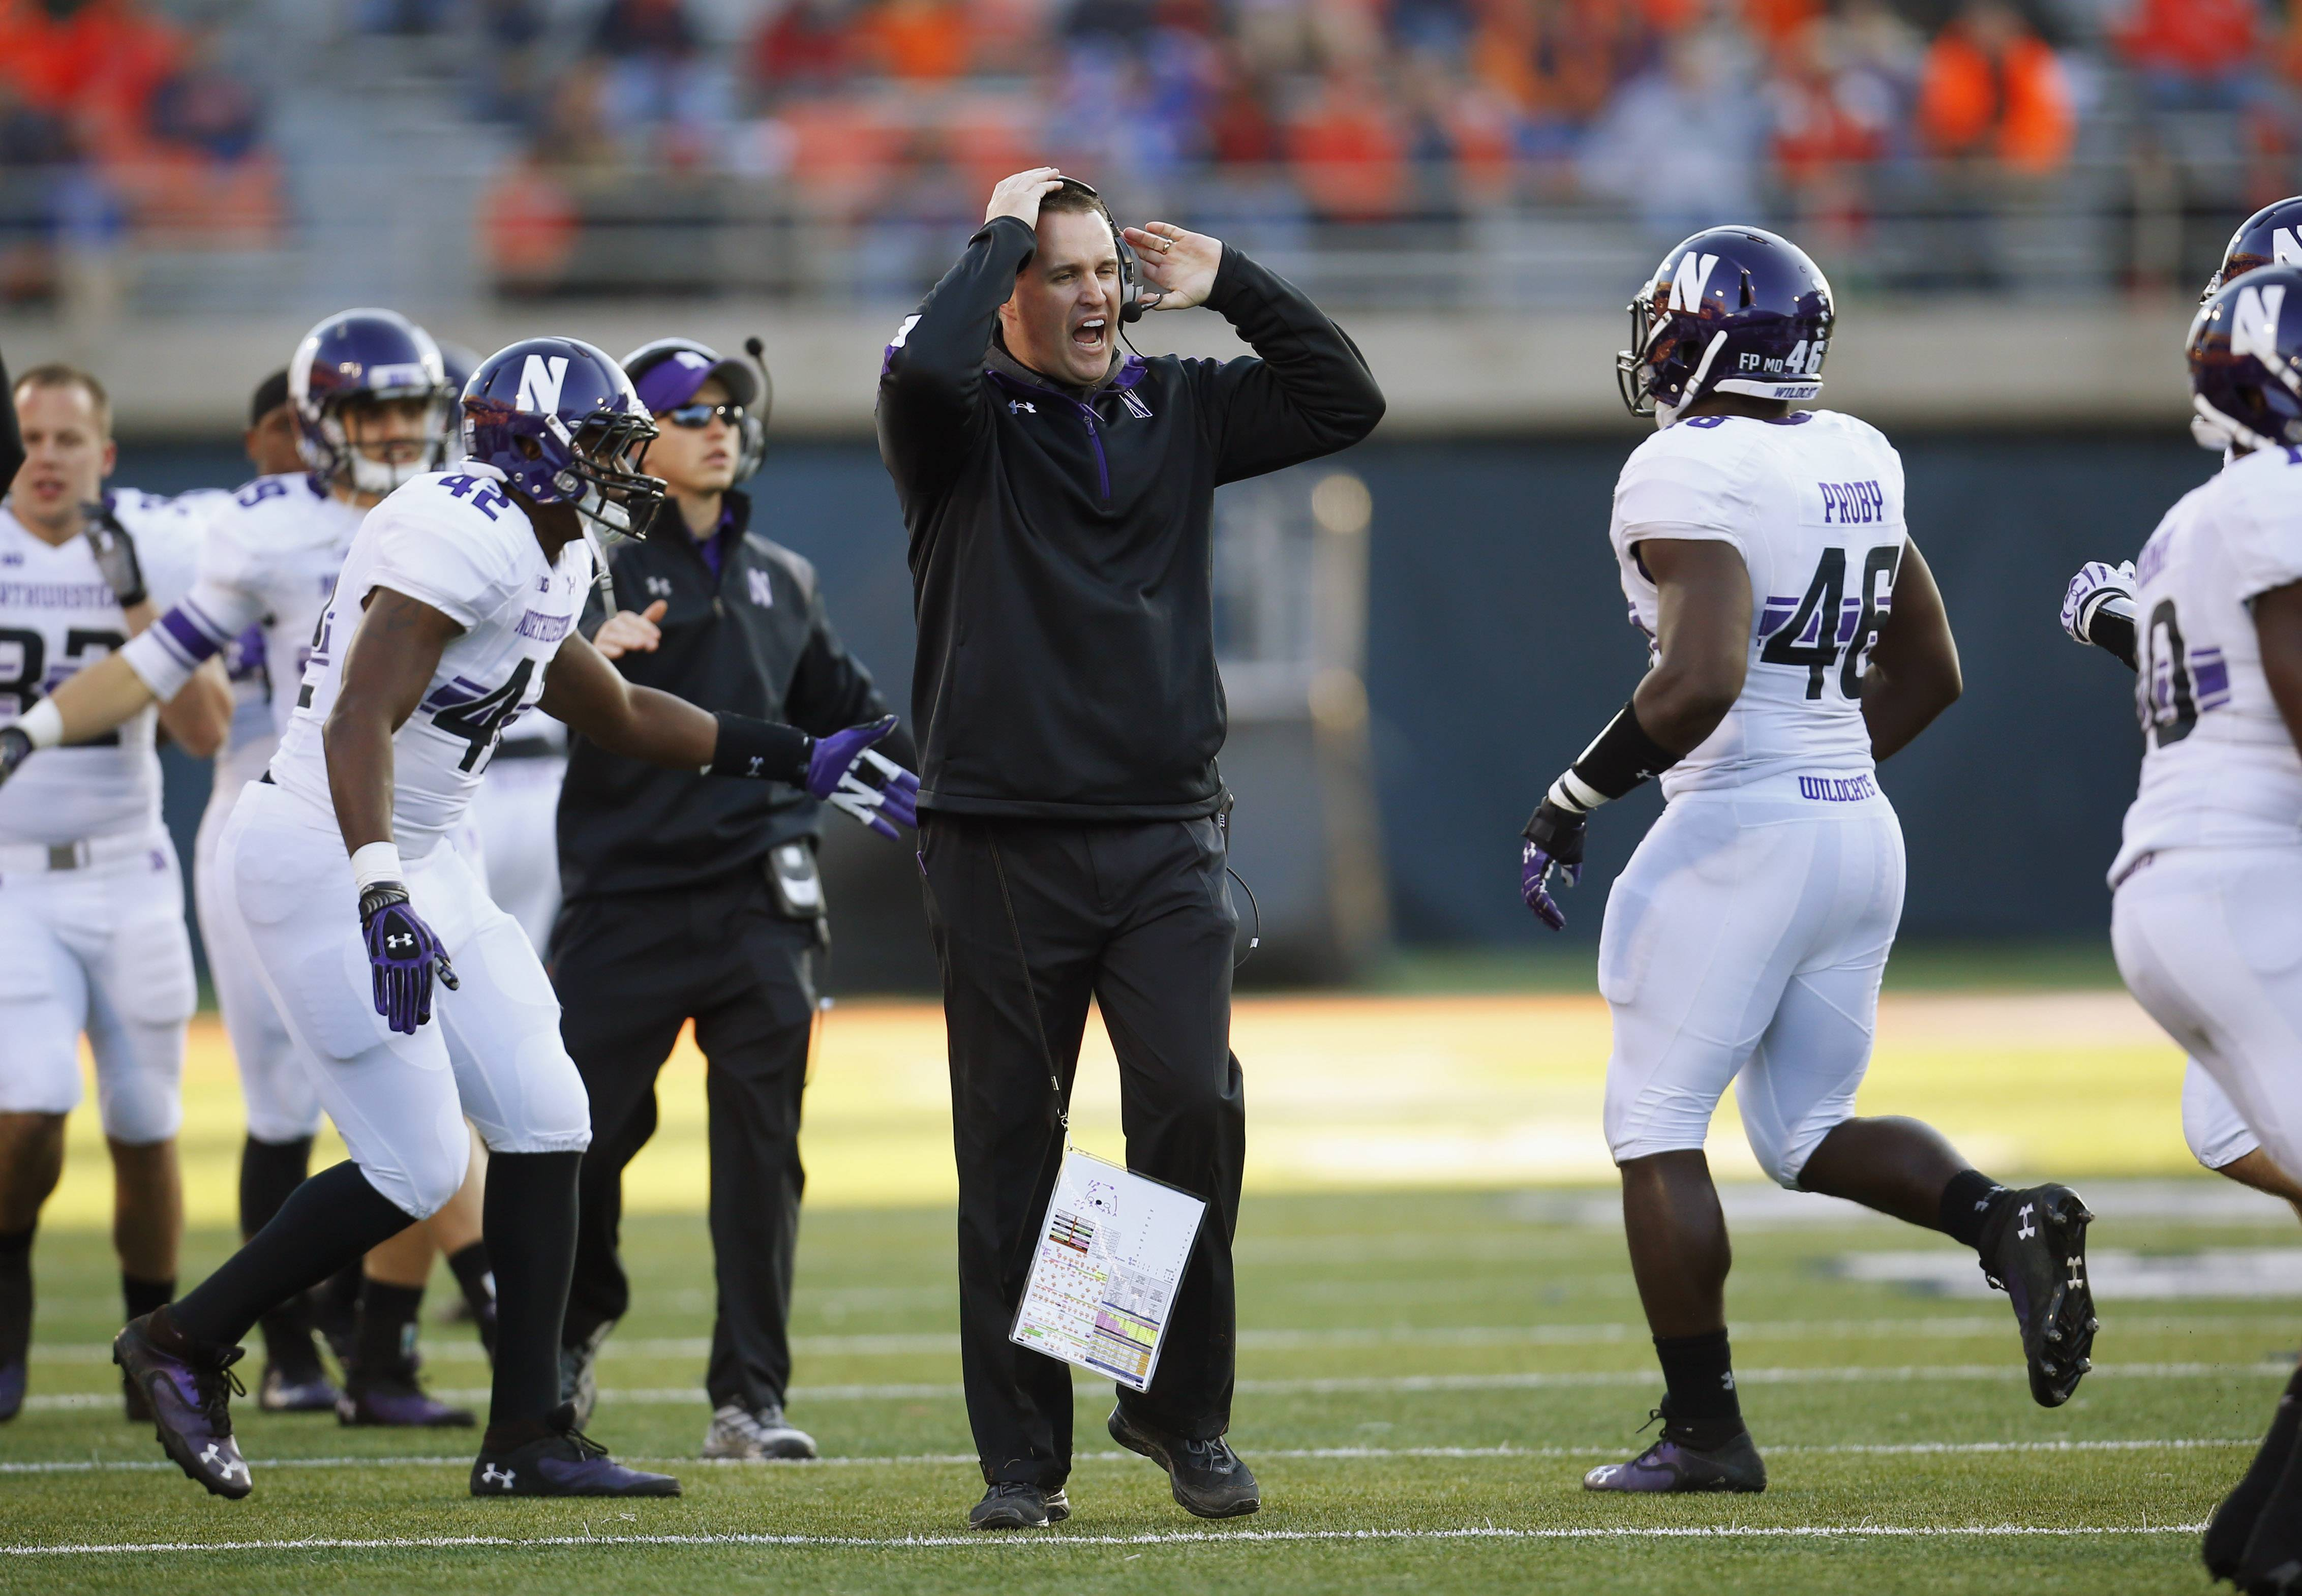 FILE - In this Nov. 30, 2013, file photo, Northwestern head coach Pat Fitzgerald yells at his team during an NCAA college football game against Illinois in Champaign, Ill. The Wildcats are coming off a disappointing 5-7 season and already hit hard by injuries and a key defection ahead of the Saturday, Aug. 30, 2014, opener at home against Cal. On top of that, they spent the offseason at ground zero in the debate over whether college players should have the right to unionize.